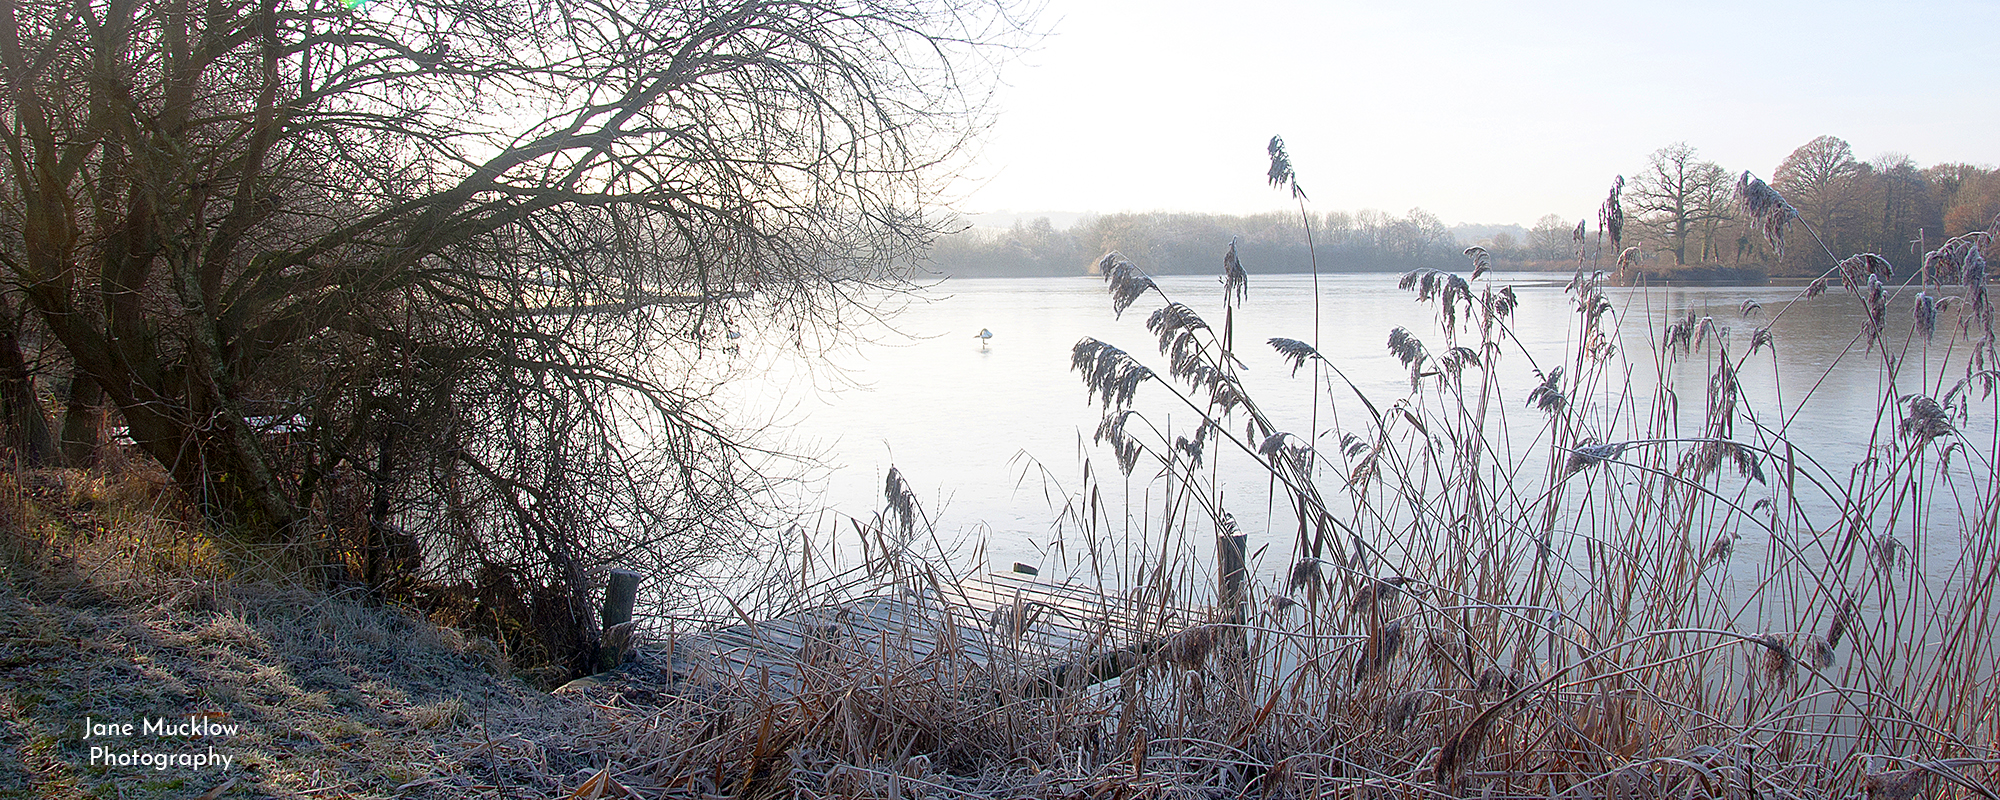 Photo by Jane Mucklow of a swan on the ice on Haysden Lake, frosty morning, in Tonbridge, Kent, available as a canvas for your wall.